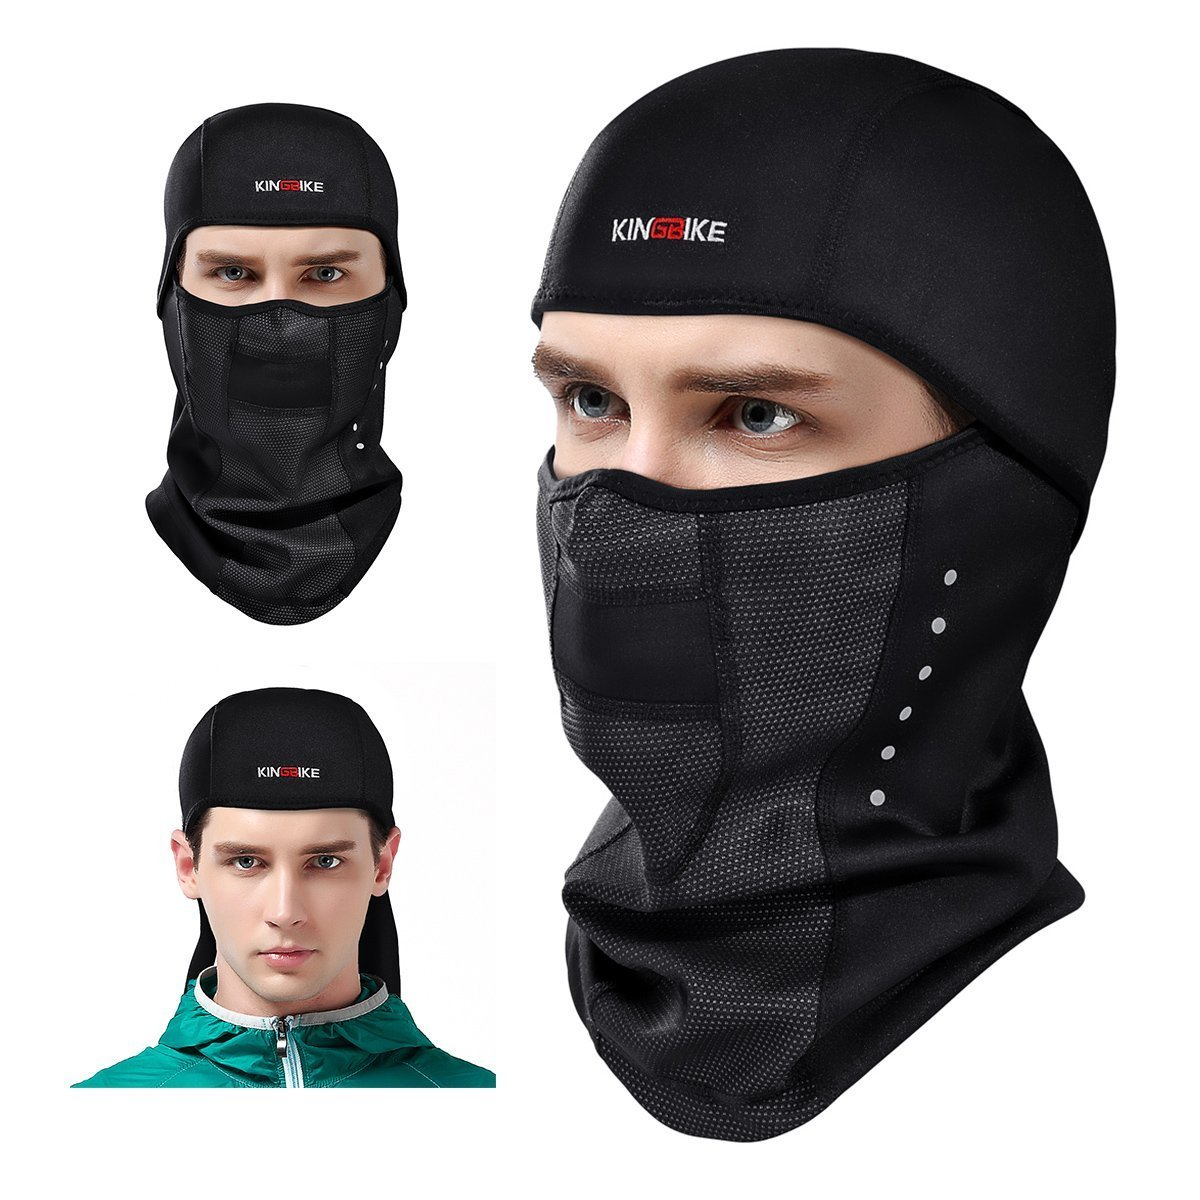 KING BIKE Winter Windproof Balaclava Ski Face Mask for Men Women, Thermal Fleece Fabric with Breathable Vents Windproof for Cold Cycling Skiing Motorcycle Snowboard Tactical Hunting (3) TSZ000376BK